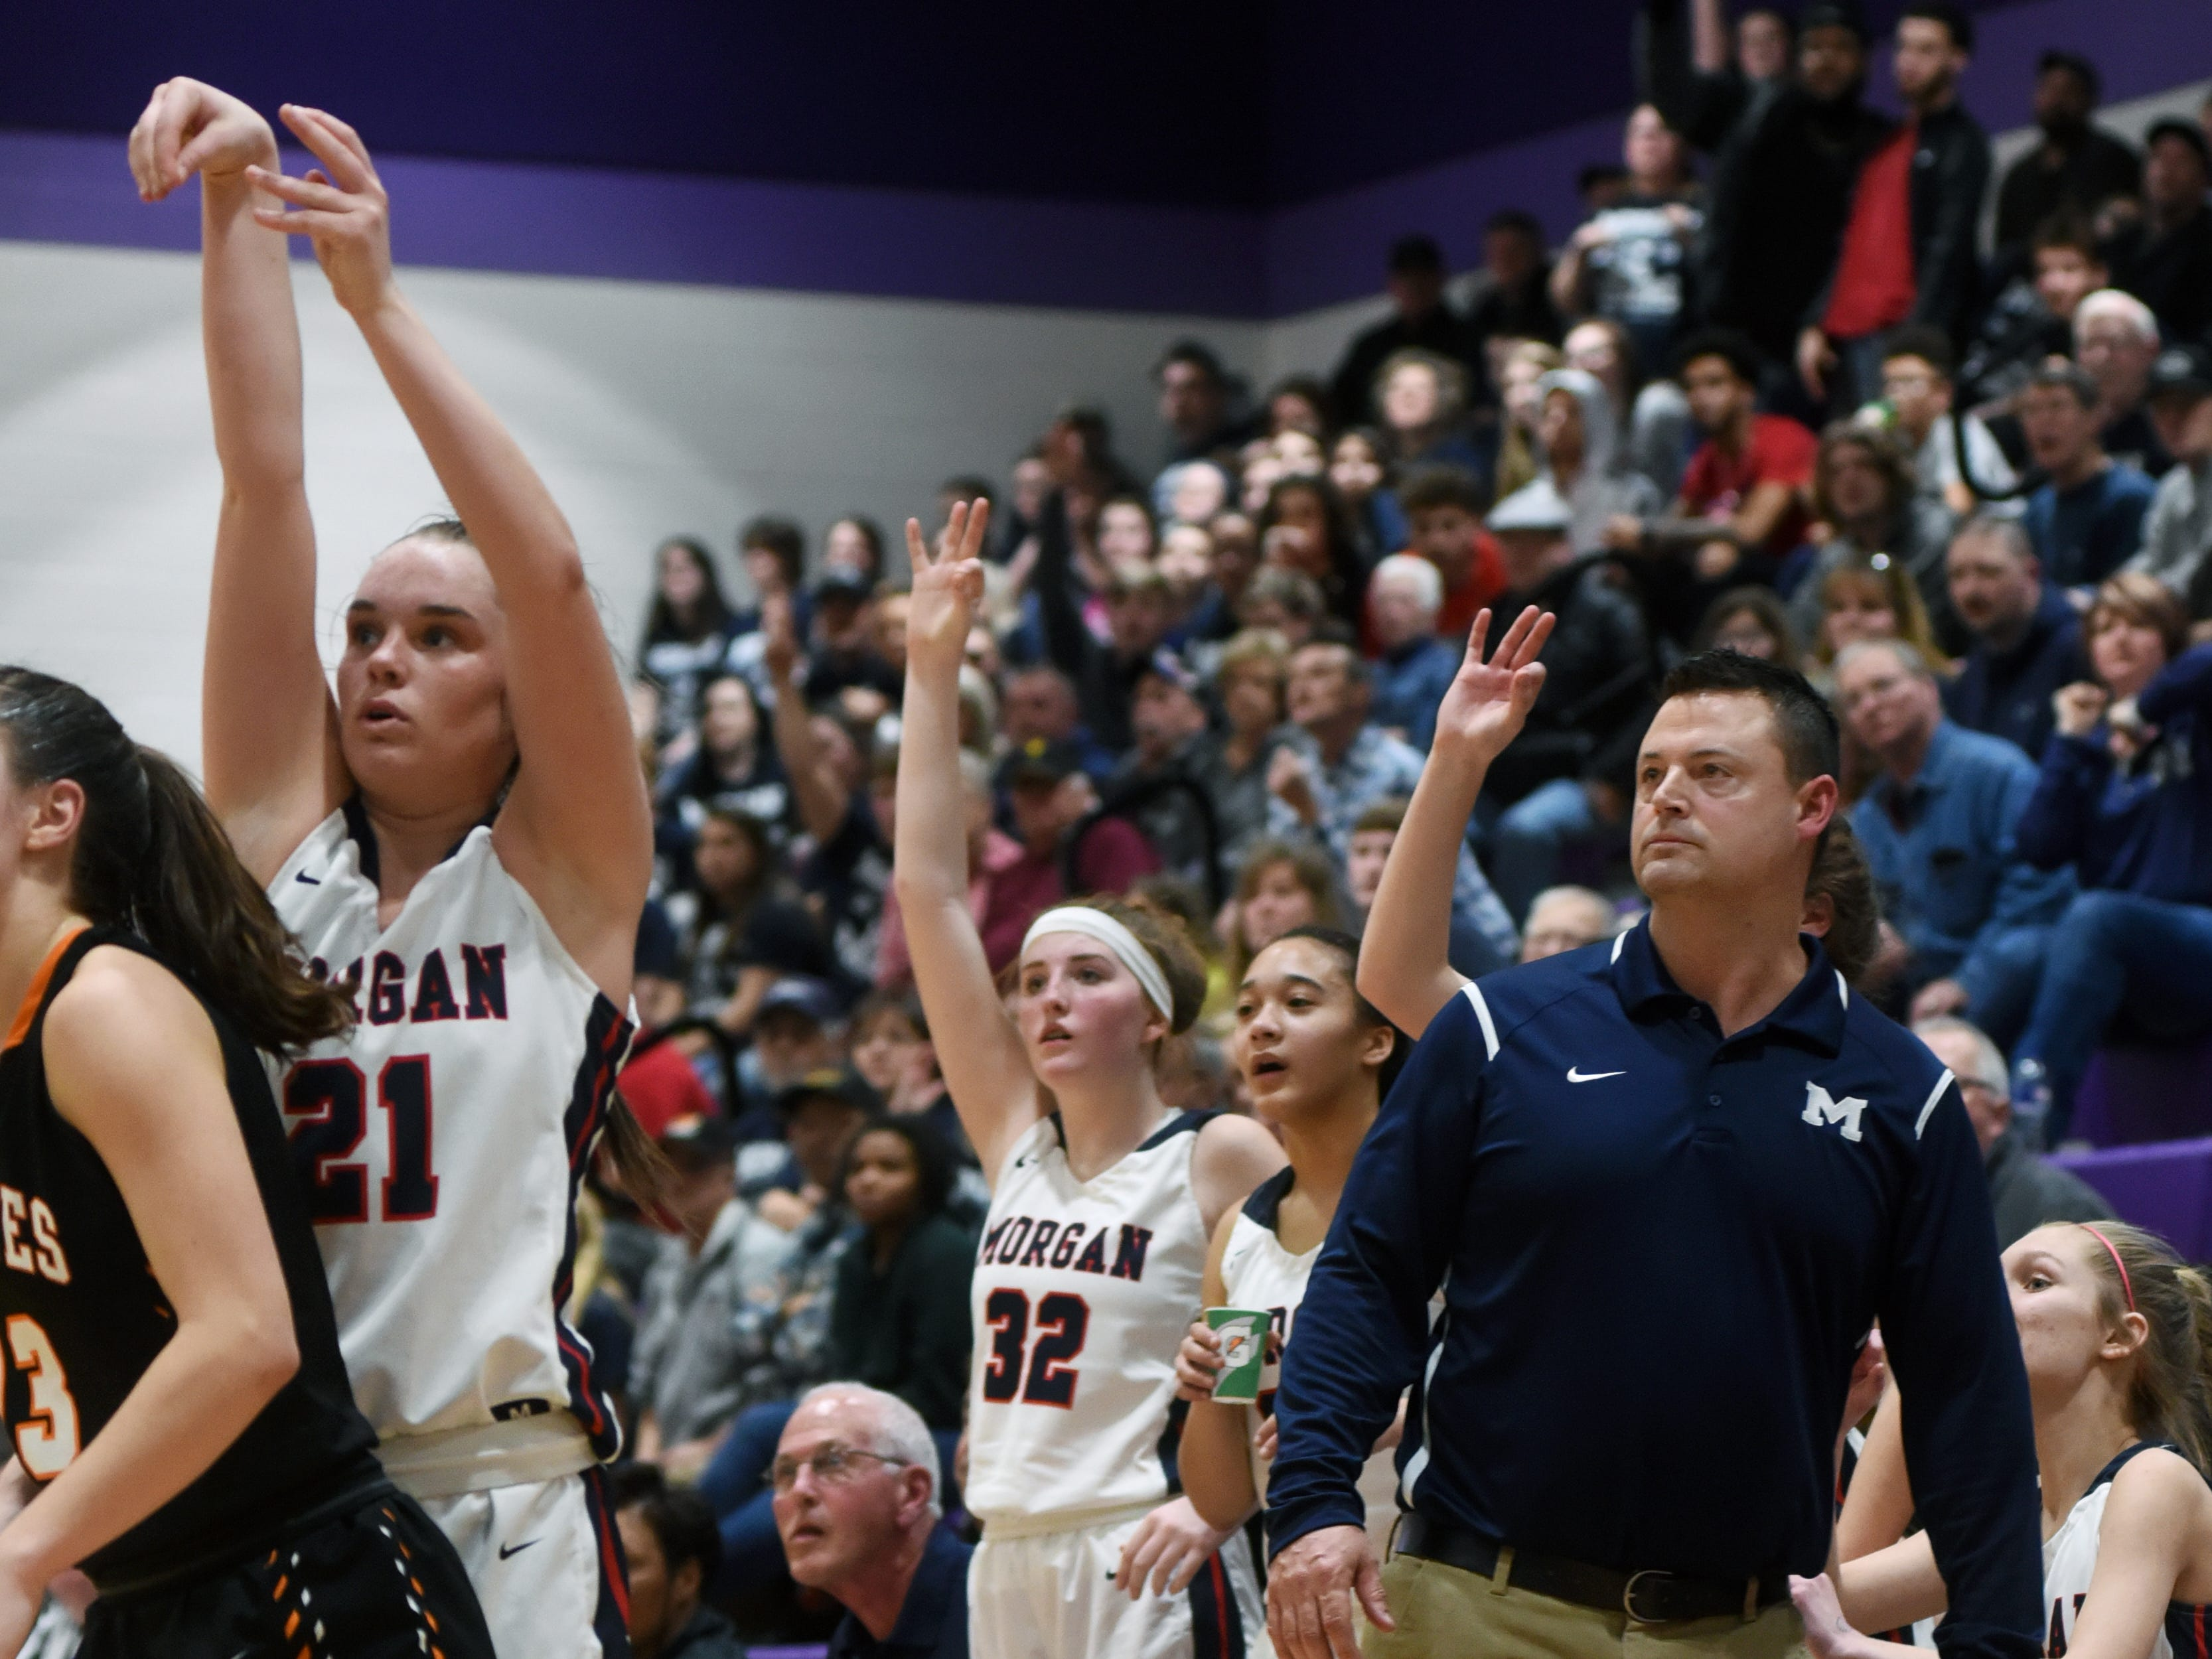 Players on the bench watch Kaylie Apperson's 3-point attempt in the fourth quarter of Morgan's 56-55 loss to Wheelersburg in a Division III regional semifinal at Logan.